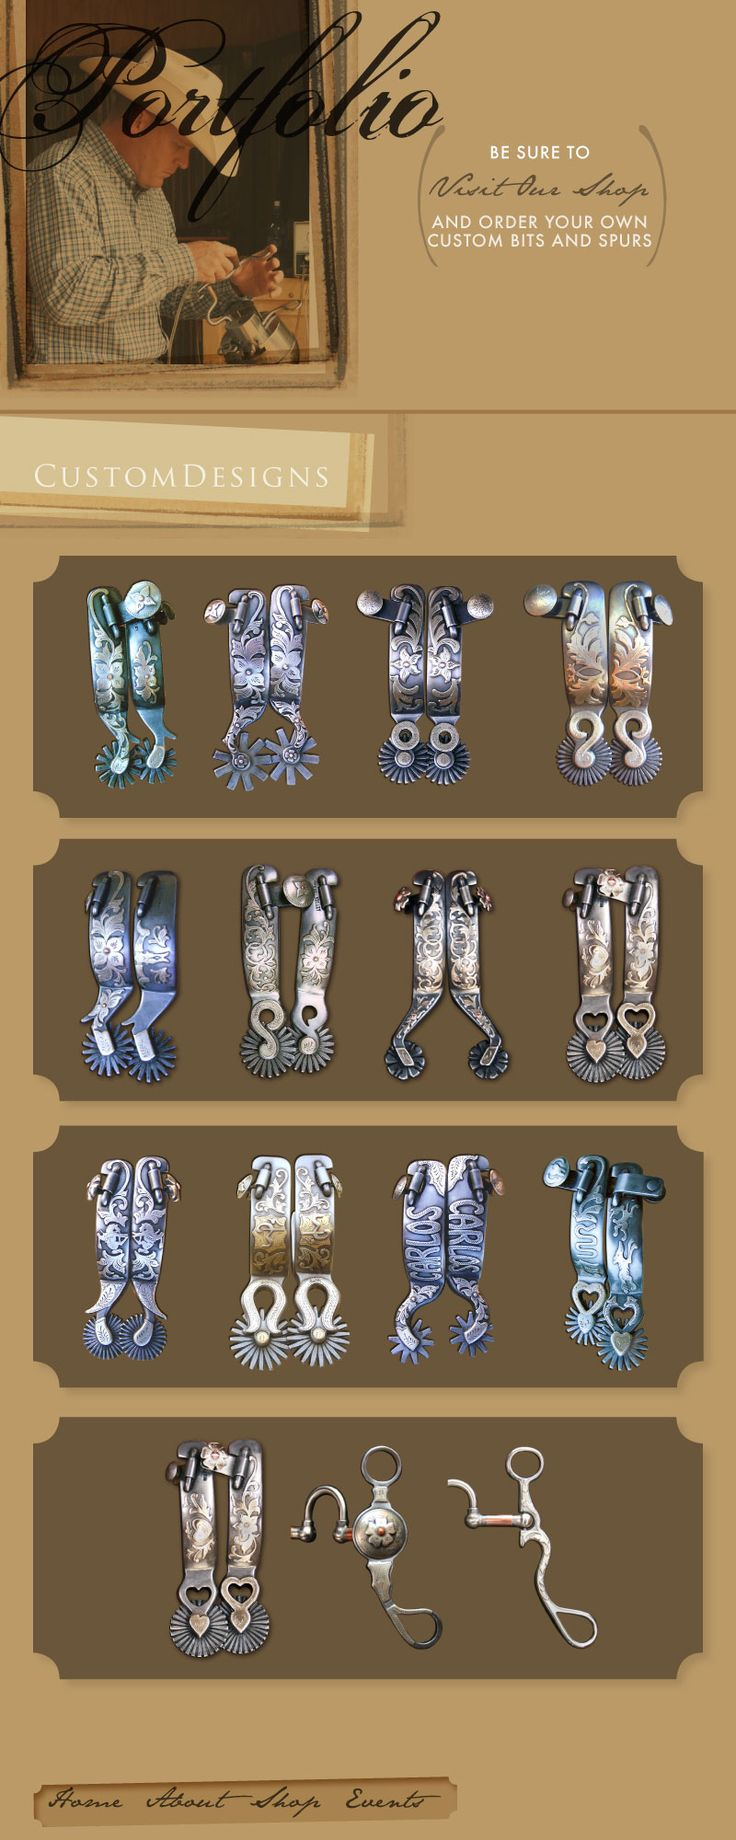 Kerry Kelley Bits & Spurs!! I want some of these SPURS!!